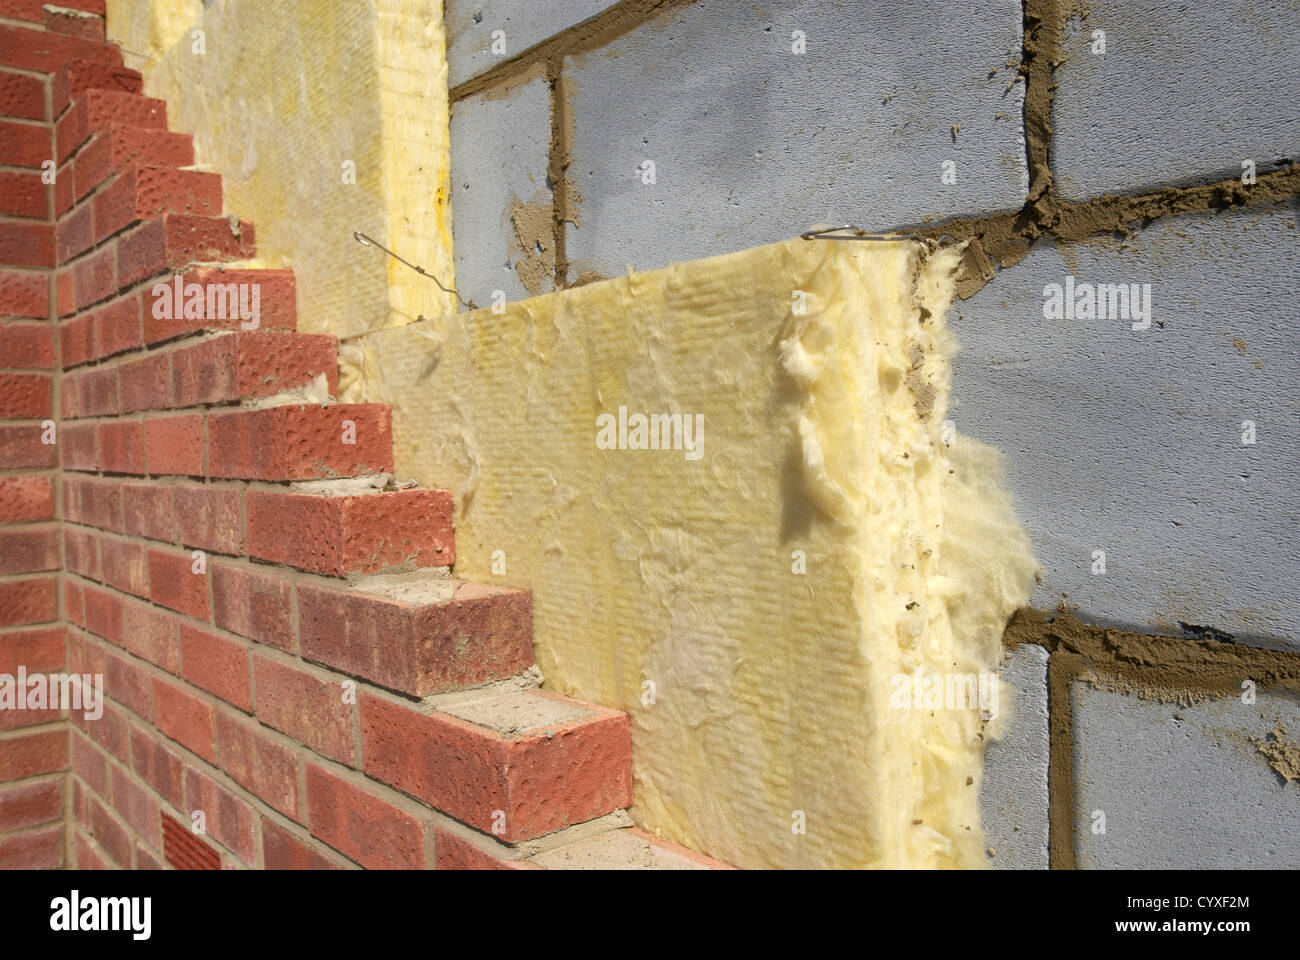 New Insulated Cavity Wall Detail Stock Photo 51599036 Alamy